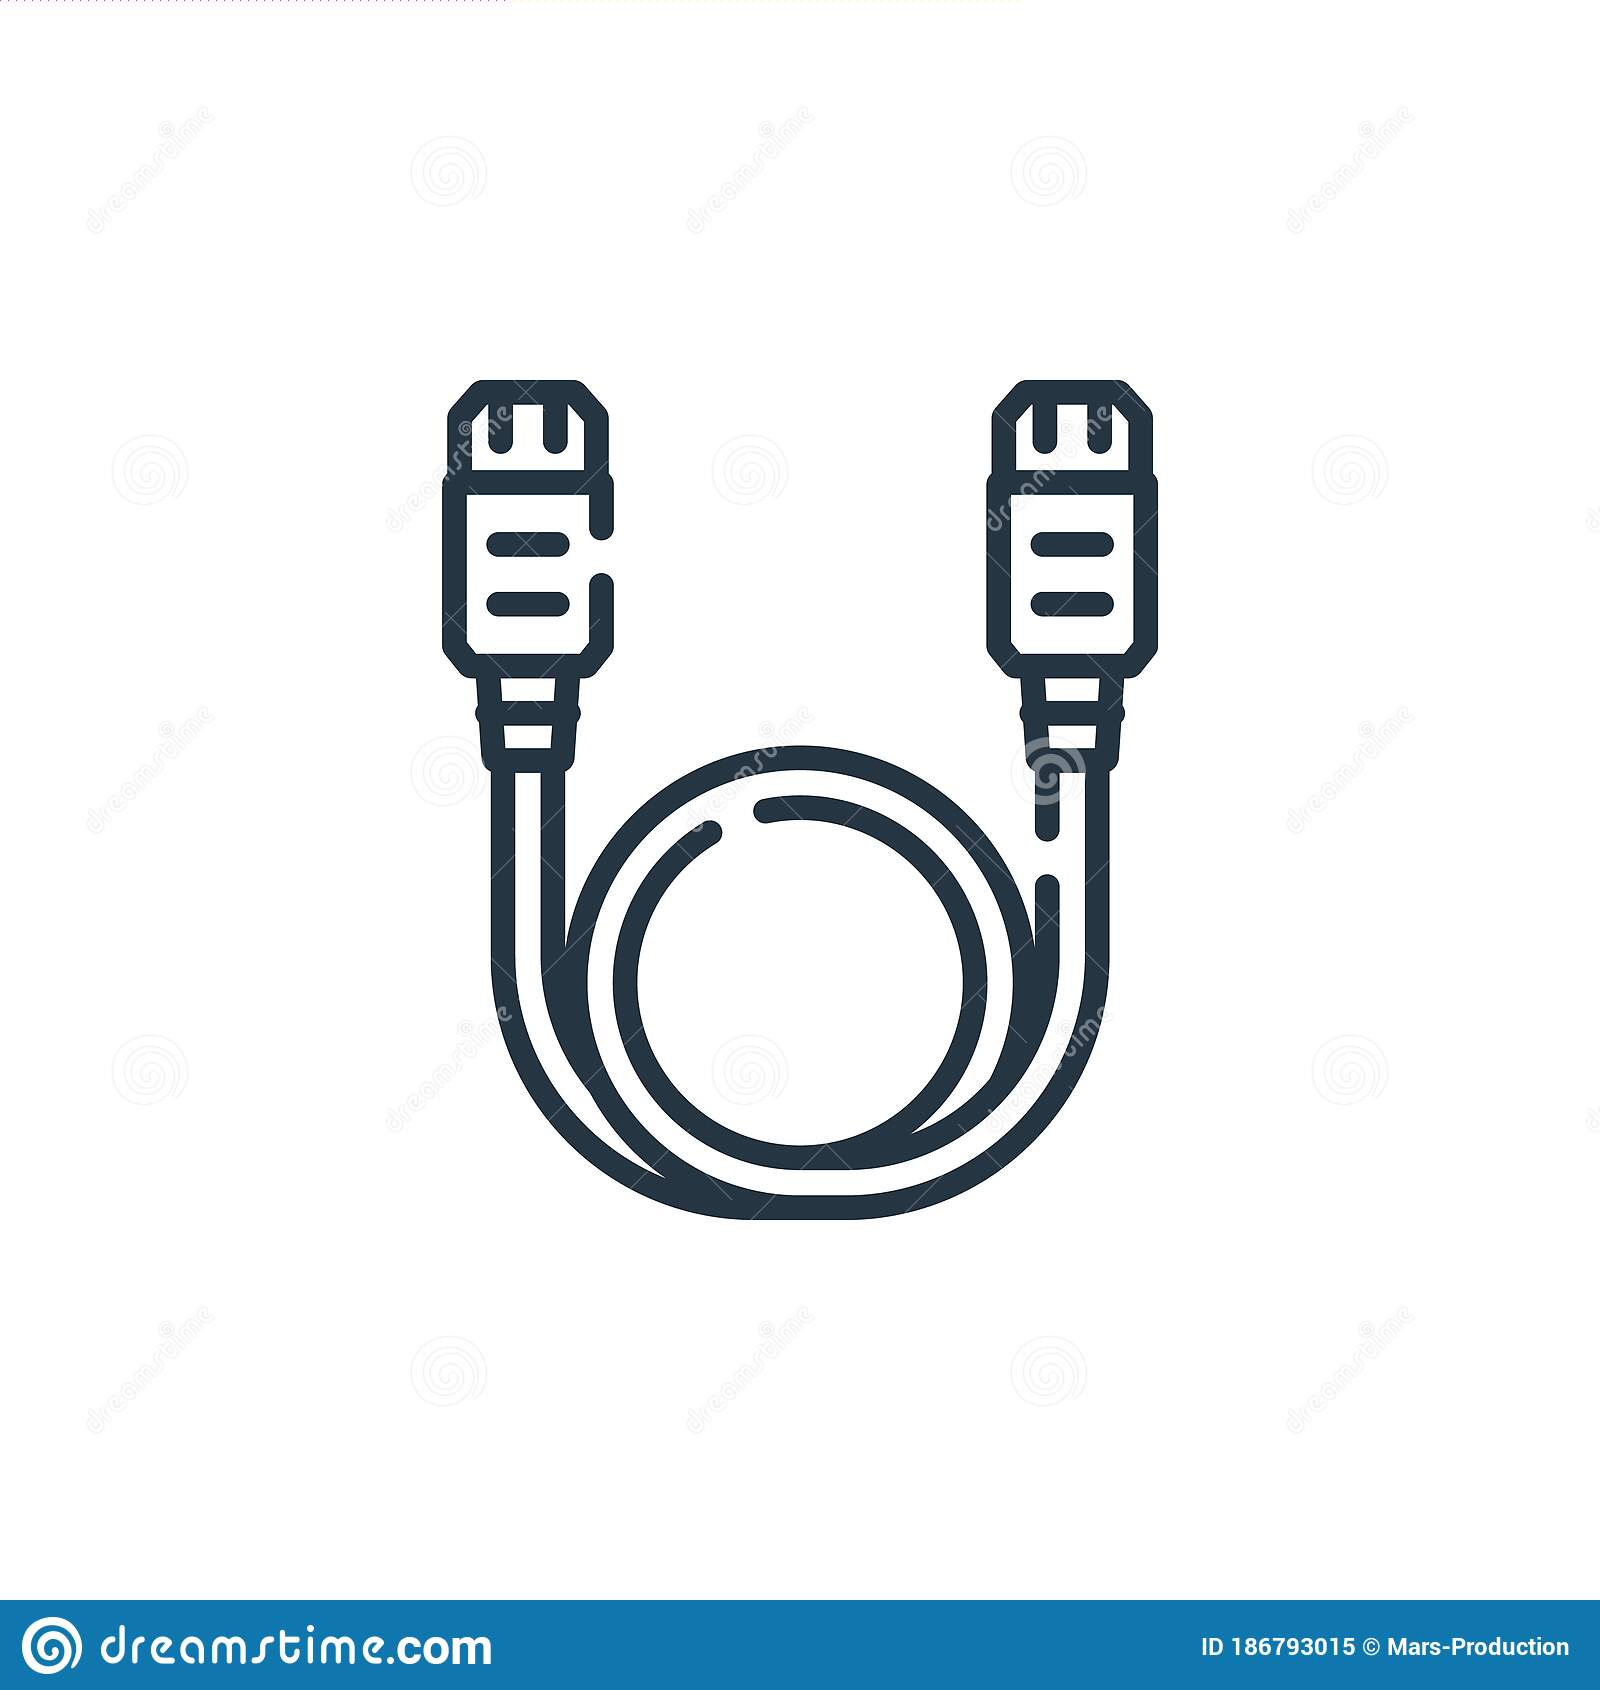 hdmi cable vector icon hdmi cable editable stroke hdmi cable linear symbol for use on web and mobile apps logo print media stock vector illustration of contact computer 186793015 hdmi cable vector icon hdmi cable editable stroke hdmi cable linear symbol for use on web and mobile apps logo print media stock vector illustration of contact computer 186793015